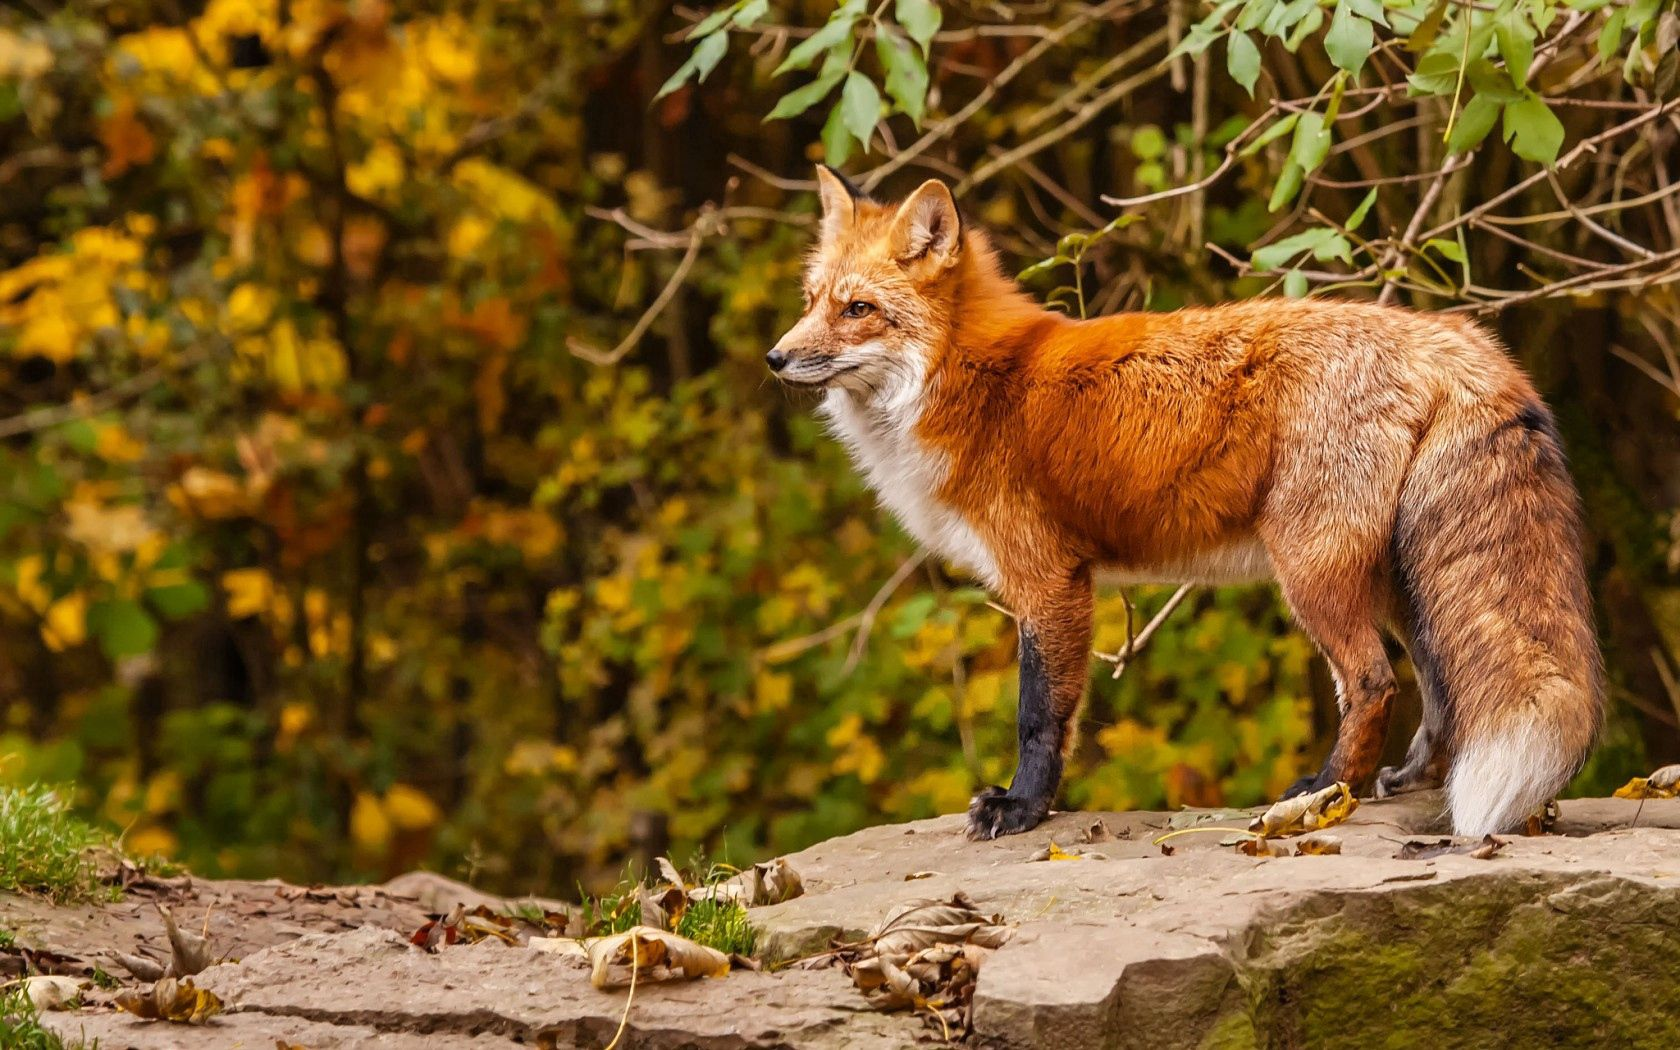 Popular Fox images for mobile phone